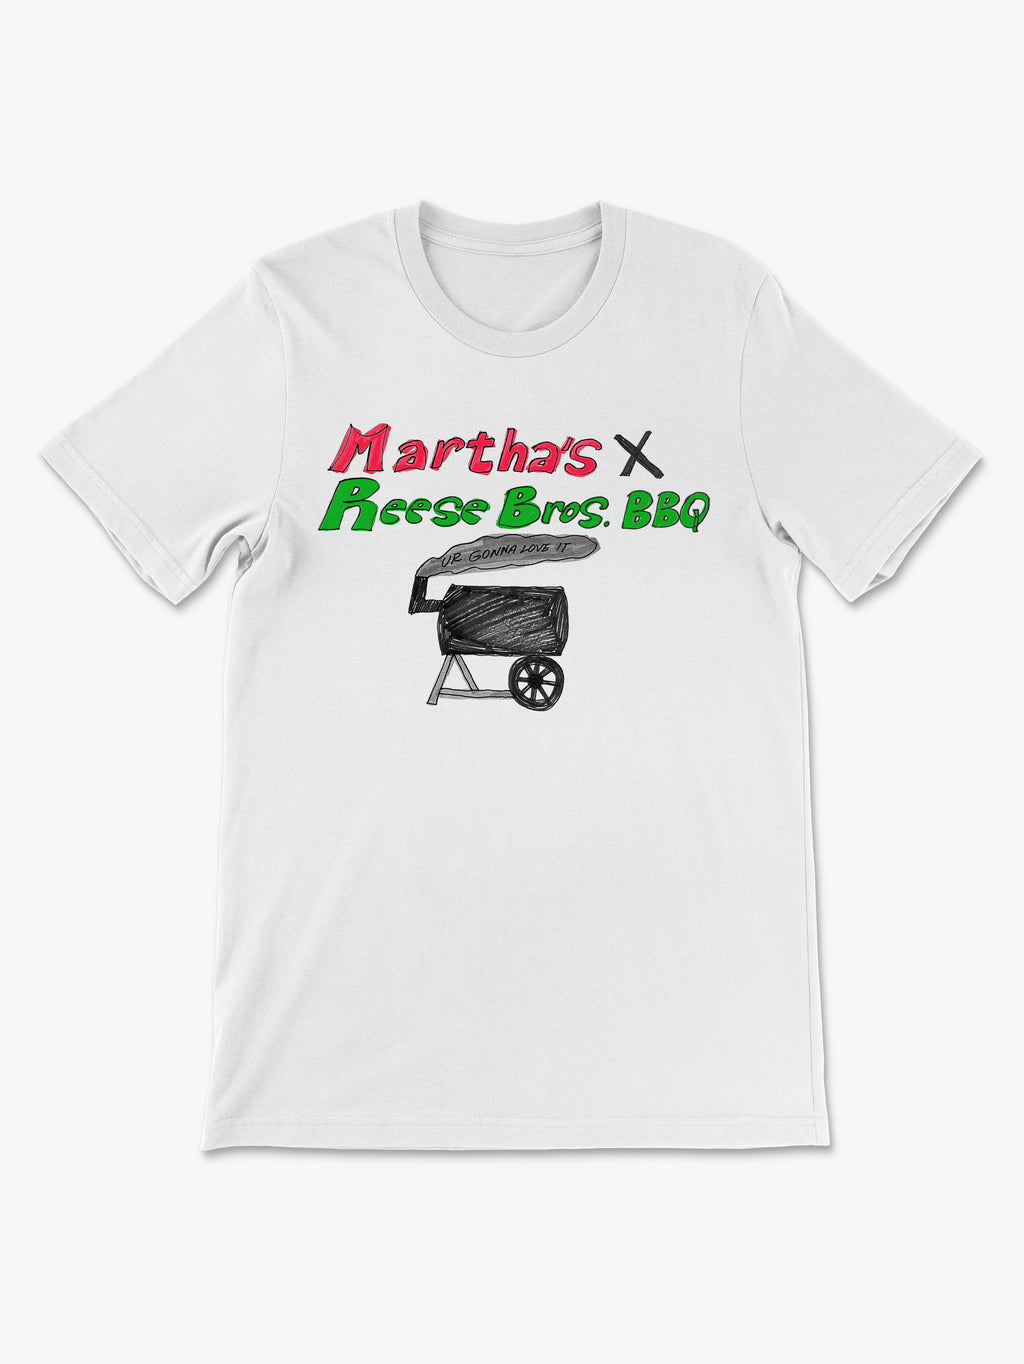 Martha's X Reese Bros BBQ by Martha's Contemporary